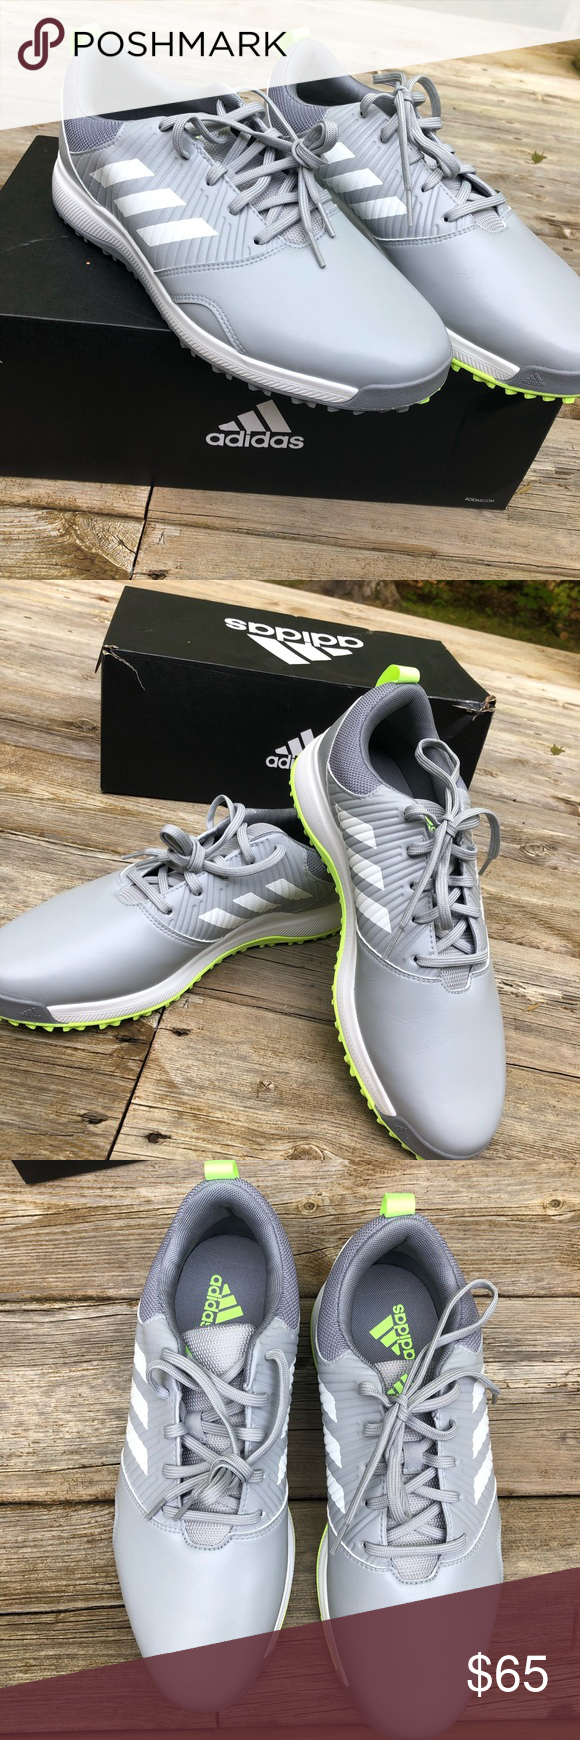 Adidas Golf Shoes Size 10 grey and white mens   Golf shoes, New ...